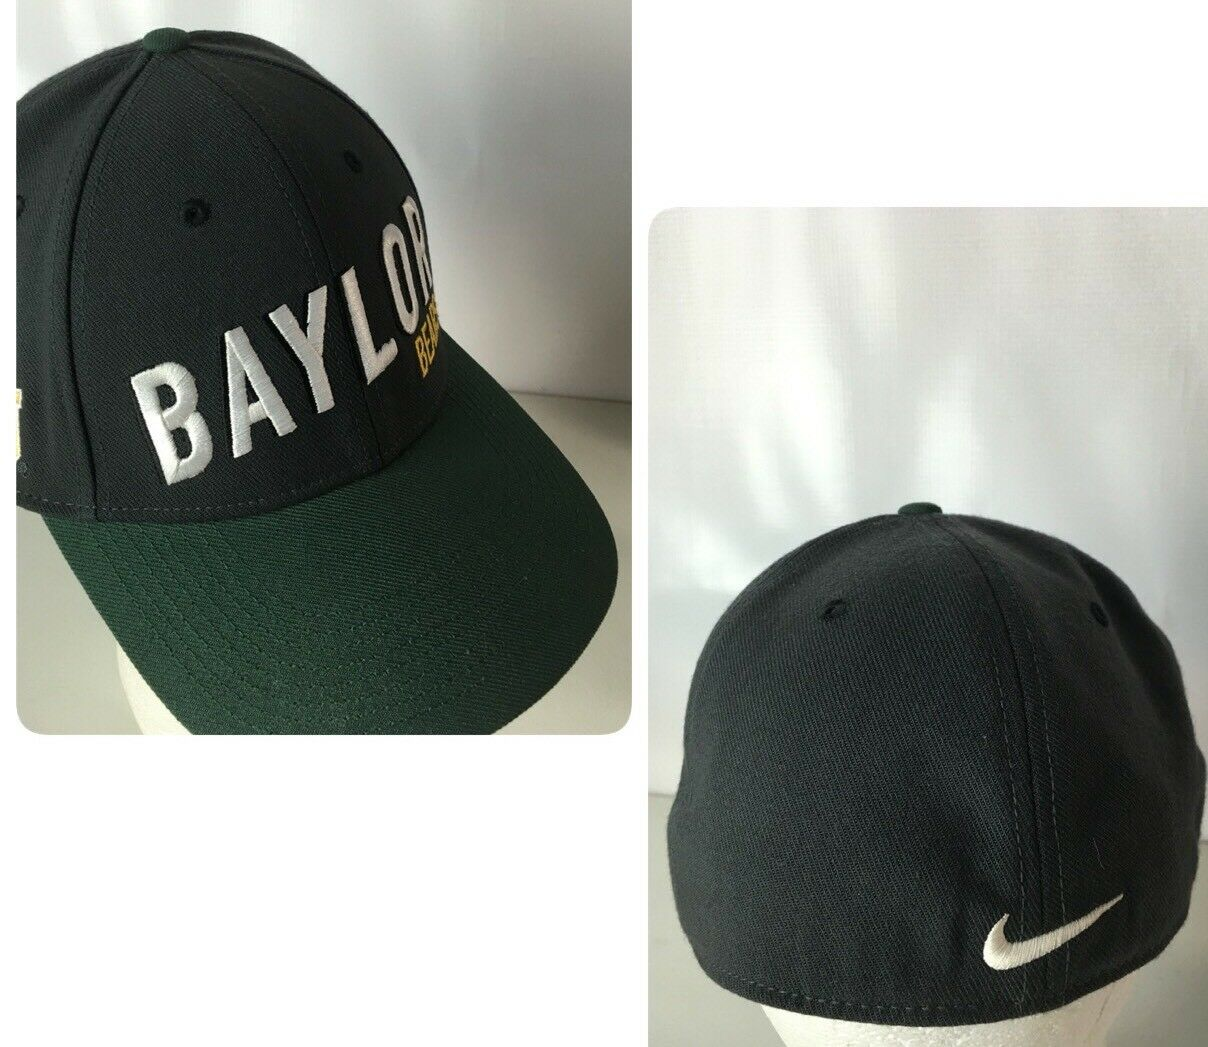 a942ff38c19 ... new zealand new nike baylor bears hat hat hat cap spellout ncaa legacy  91 dri fit ...